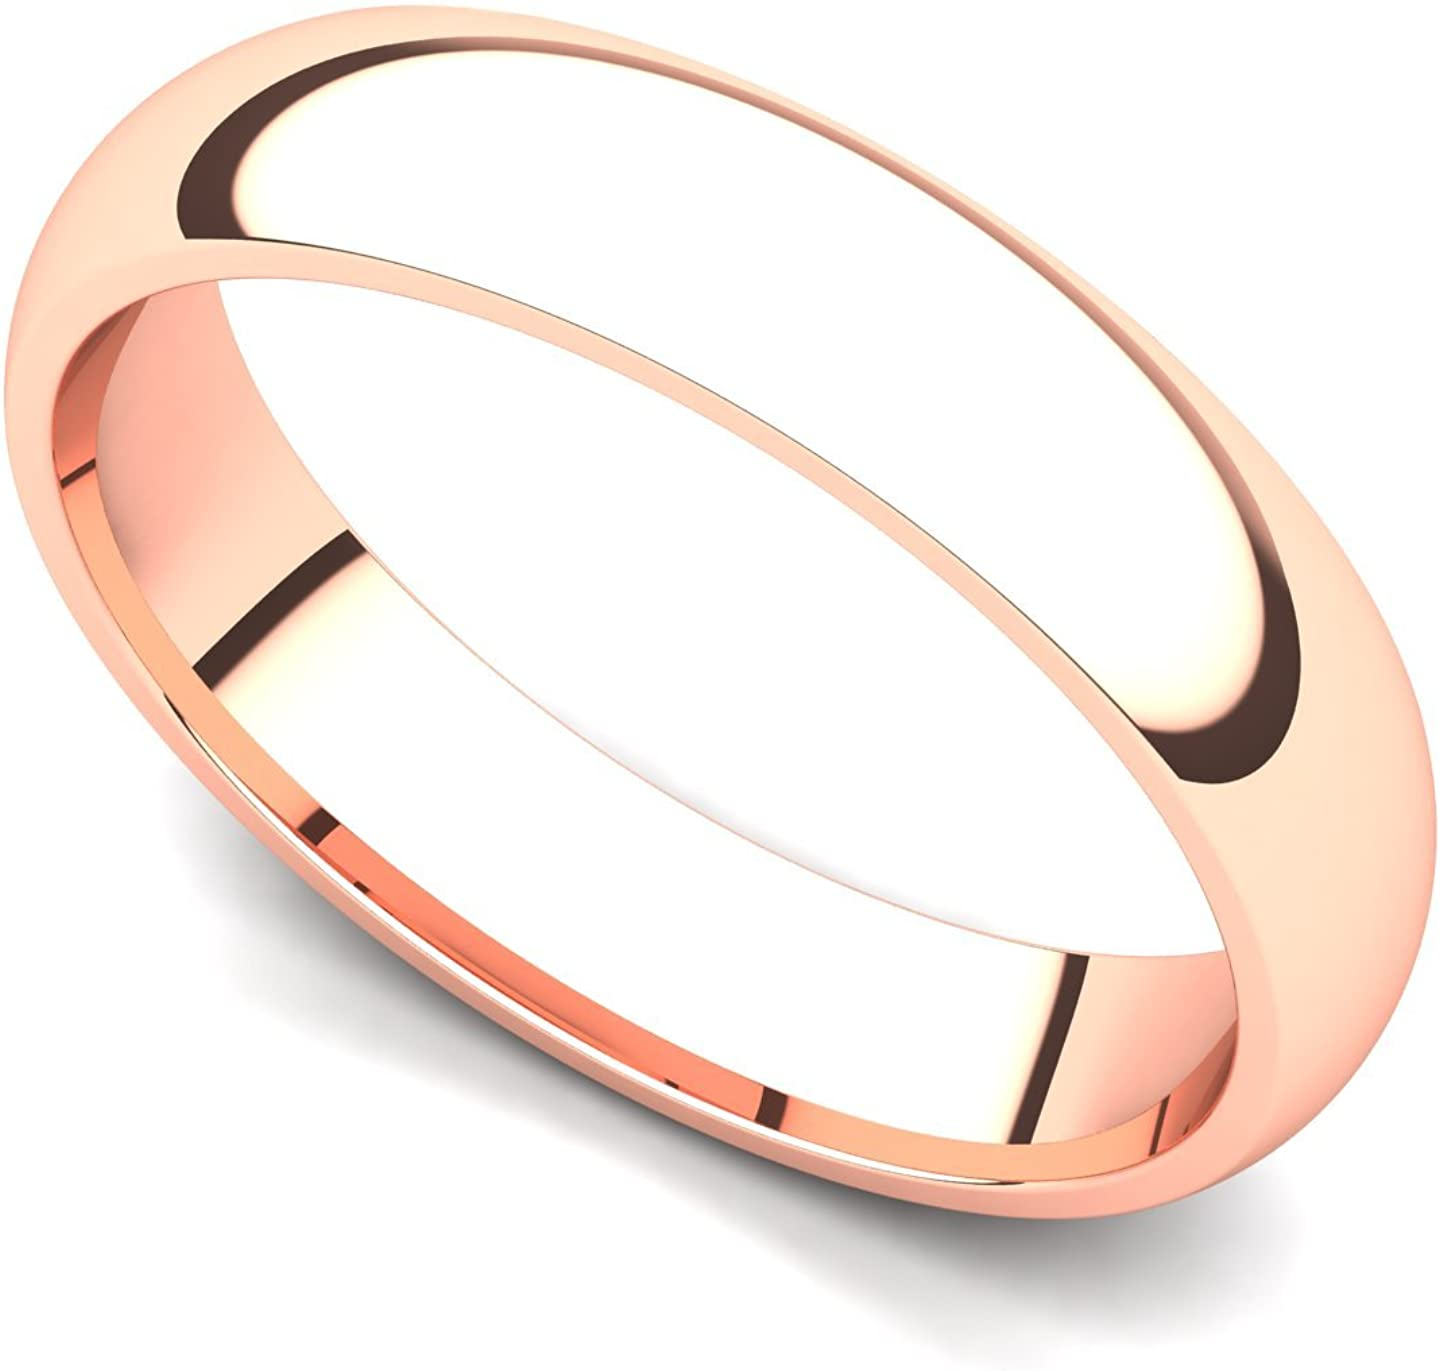 Juno Jewelry 18k Rose Gold 3mm Domed Plain Wedding Band Ring